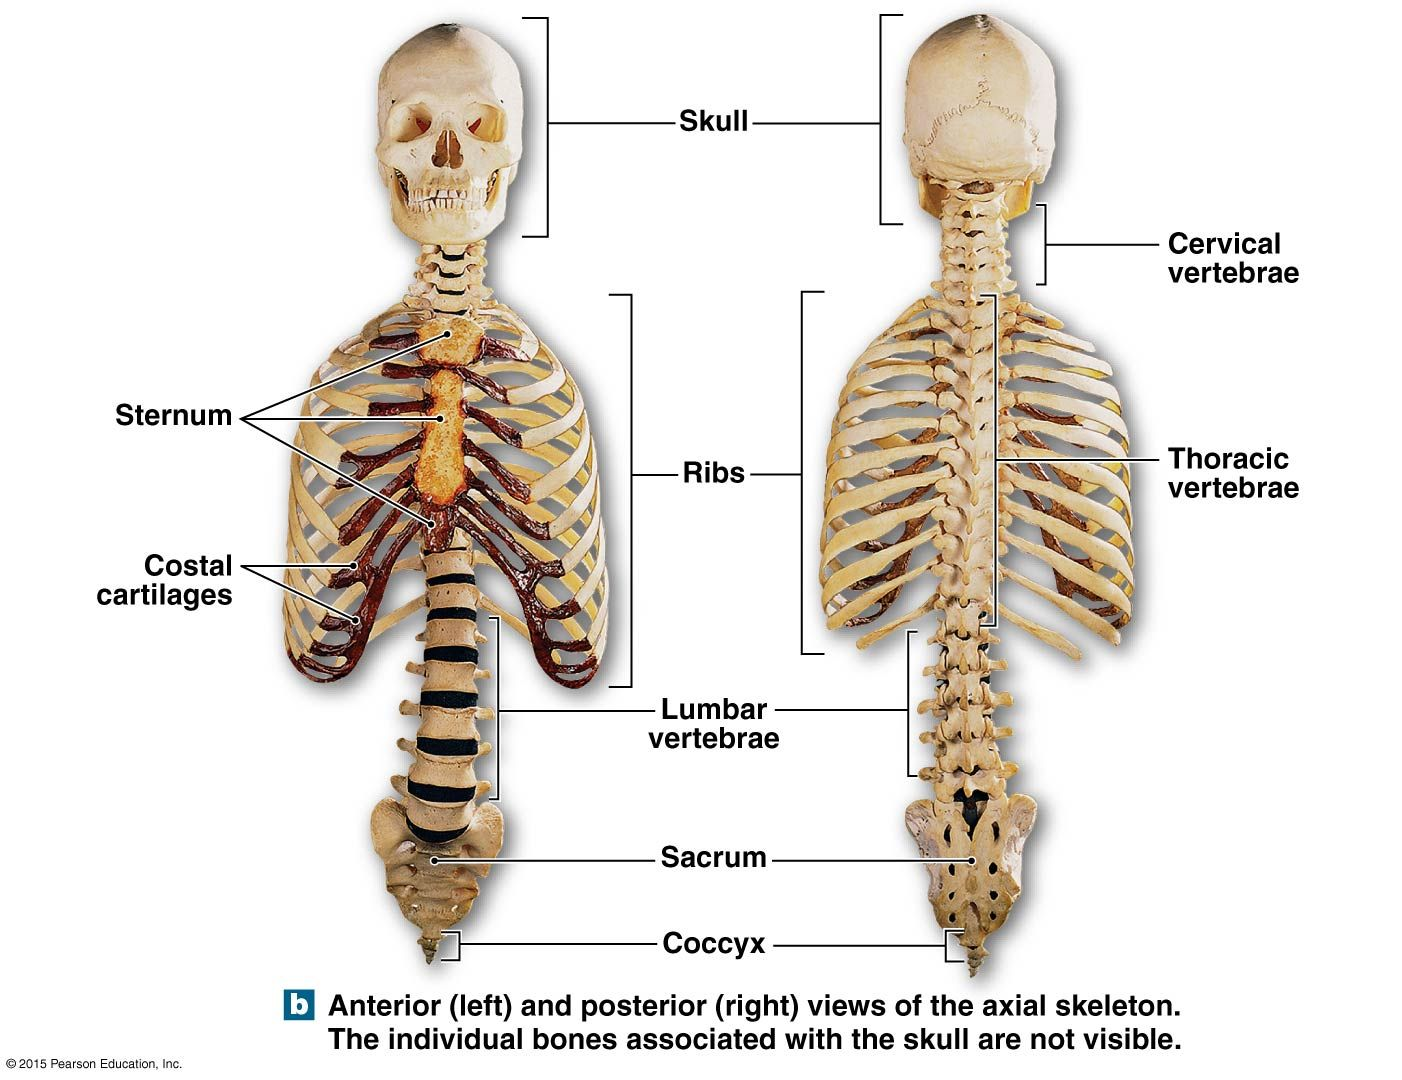 Anterioir And Posterioir Views Of The Axial Skeleton